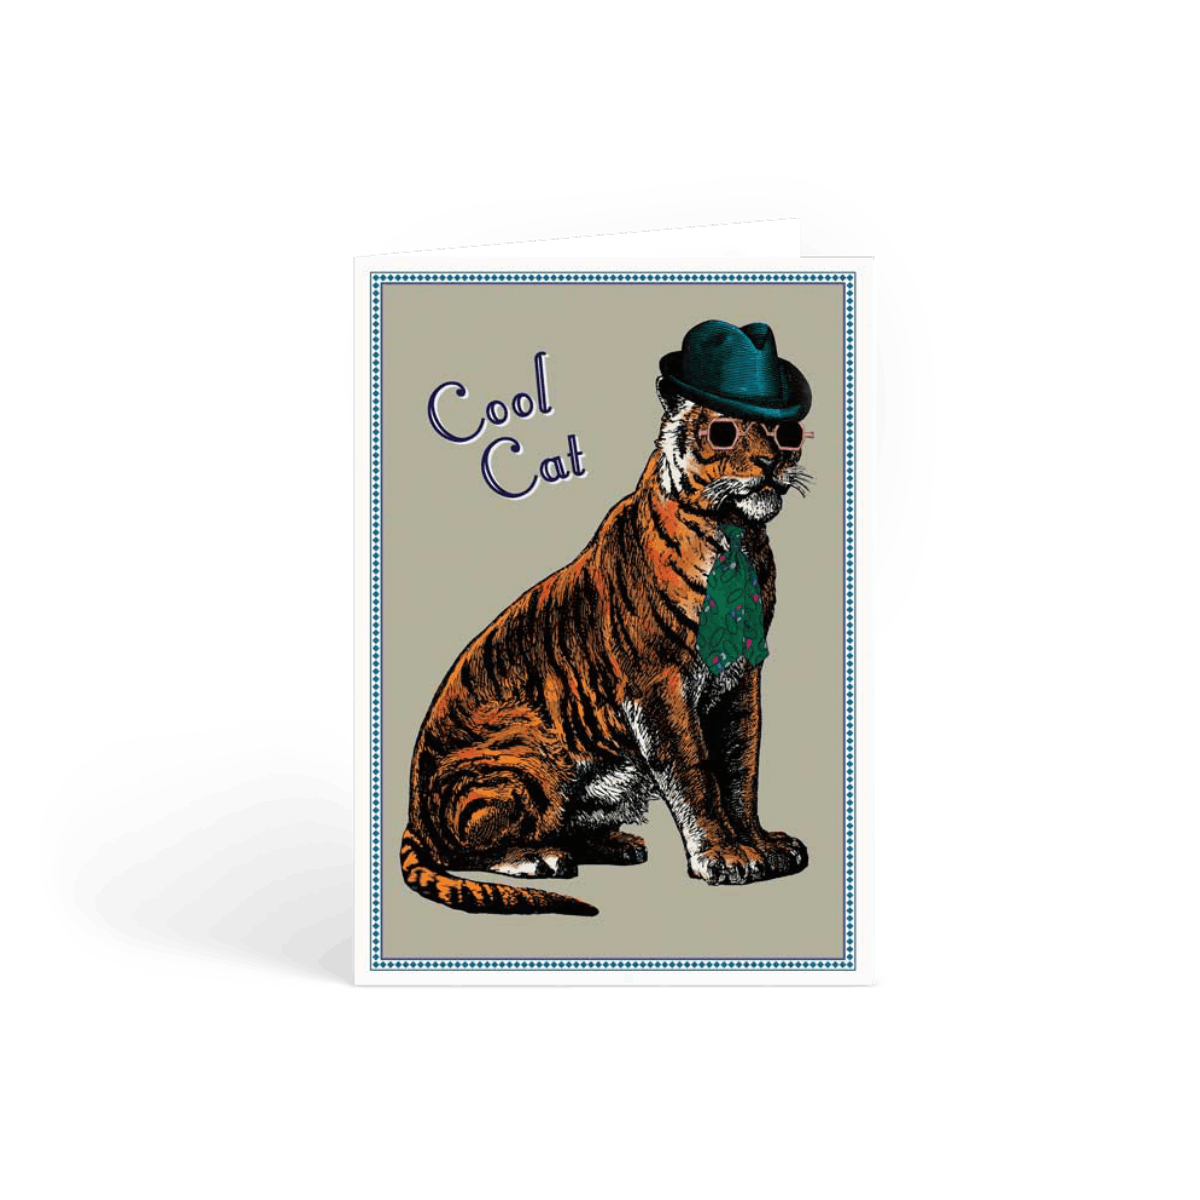 Https%3a%2f%2fwww.papier.com%2fproduct image%2f12896%2f2%2fcool cat 3250 front 1477670286.png?ixlib=rb 1.1